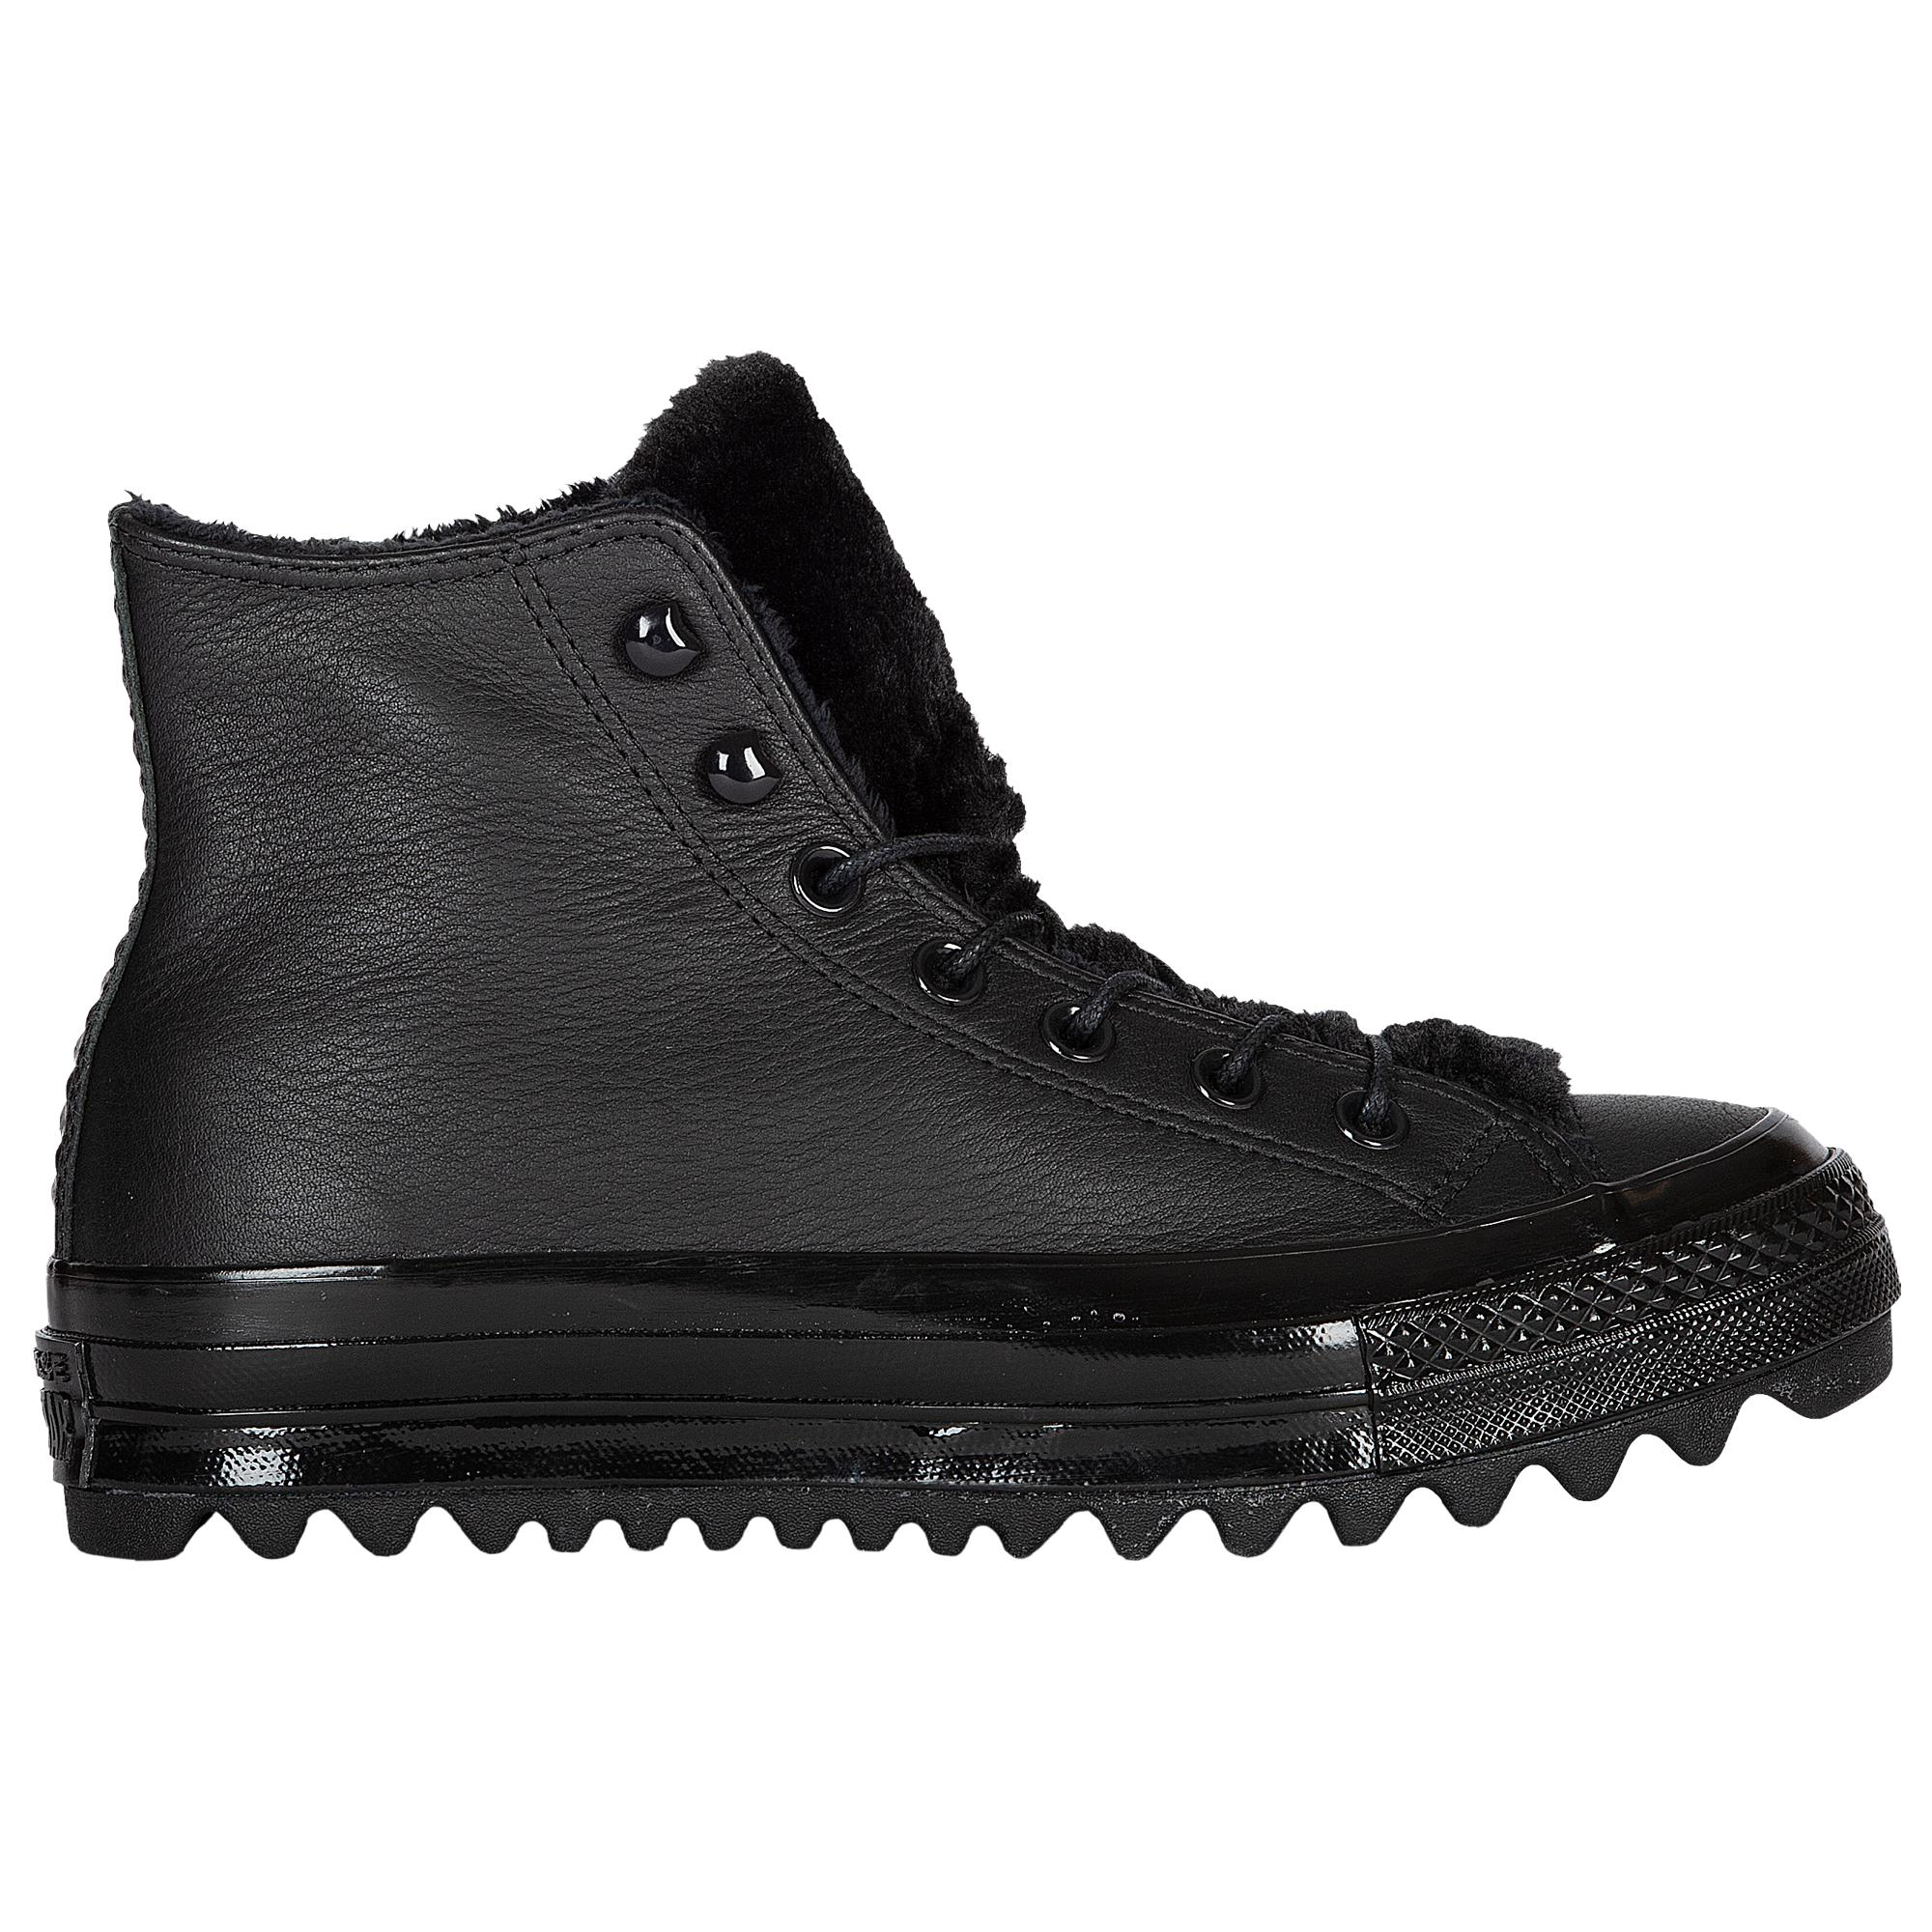 7781d5581bc4 Lyst - Converse All Star Life Ripple in Black